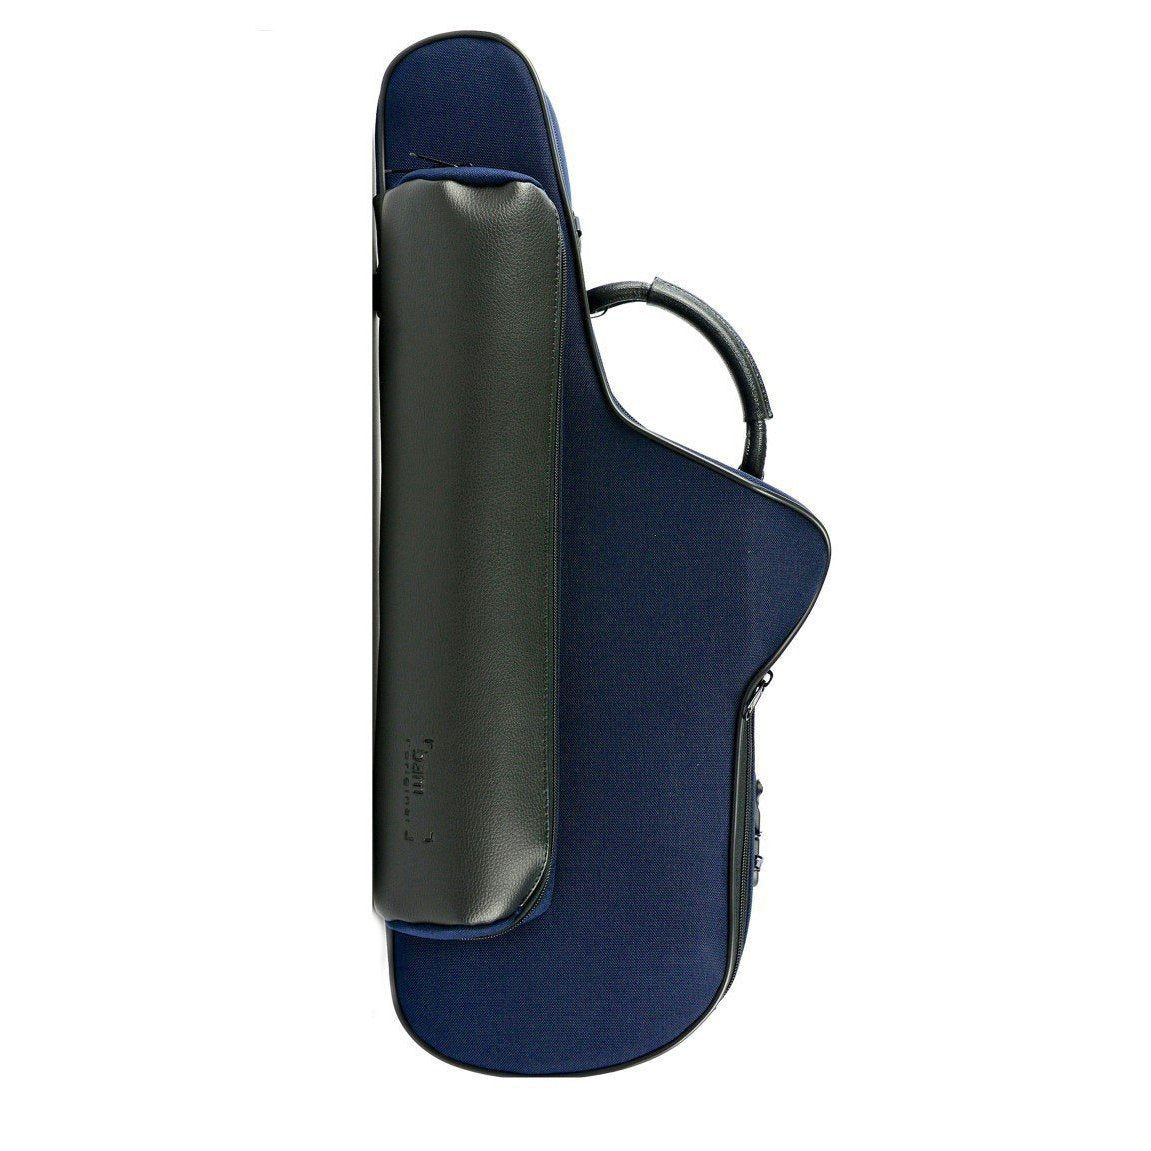 Bam - Classic Alto Saxophone Cases-Case-Bam-Navy Blue-Music Elements